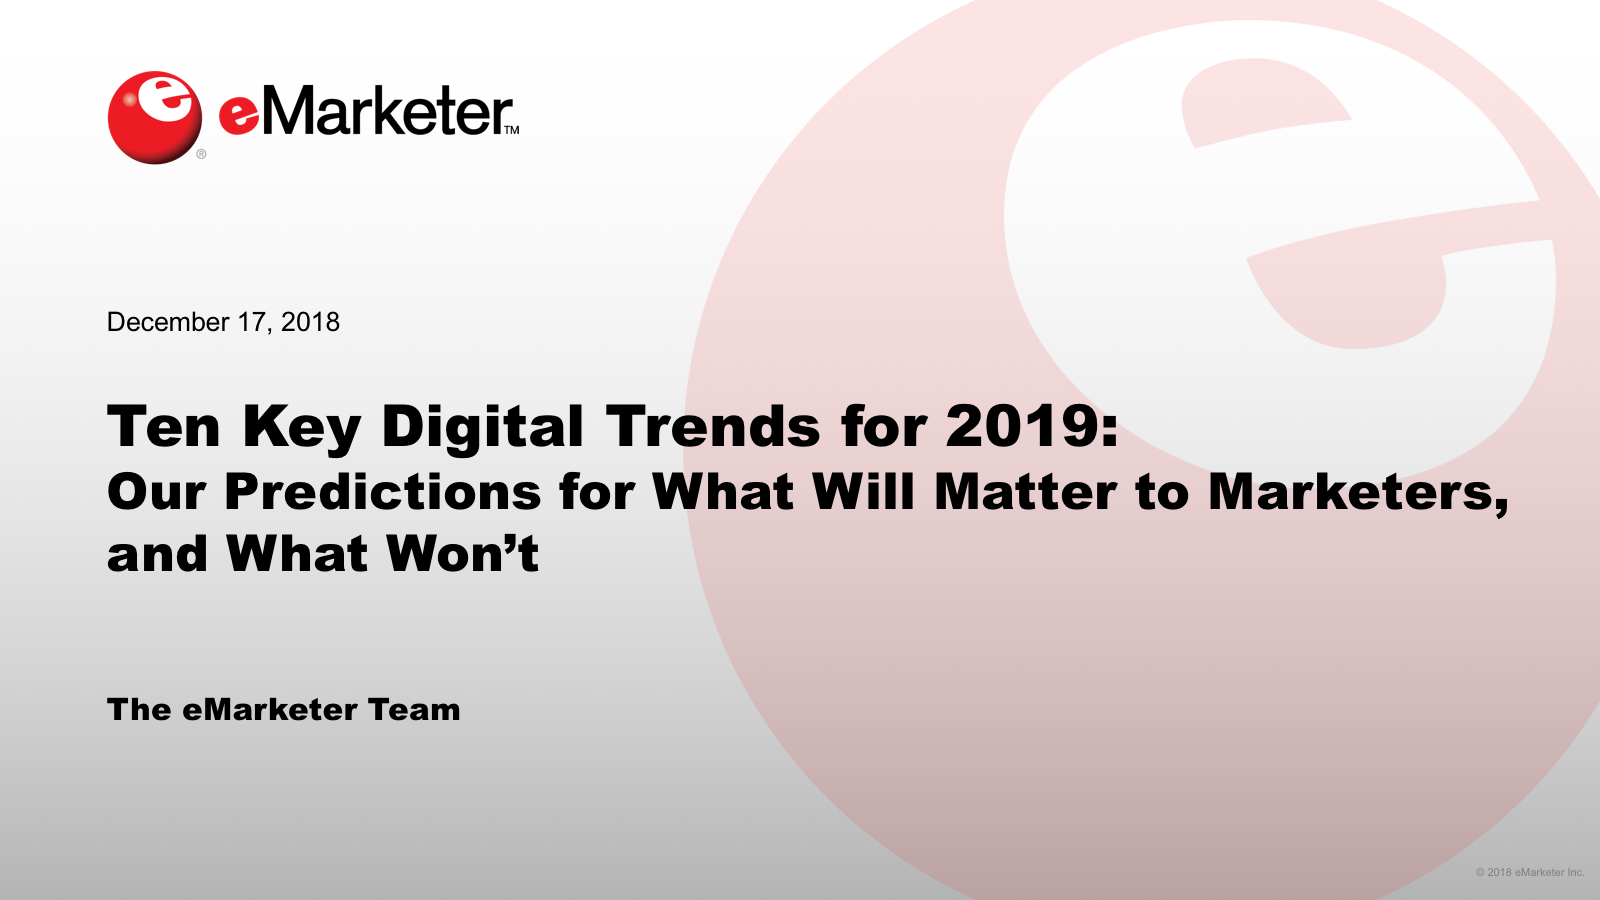 Ten Key Digital Trends for 2019 - eMarketer Trends, Forecasts